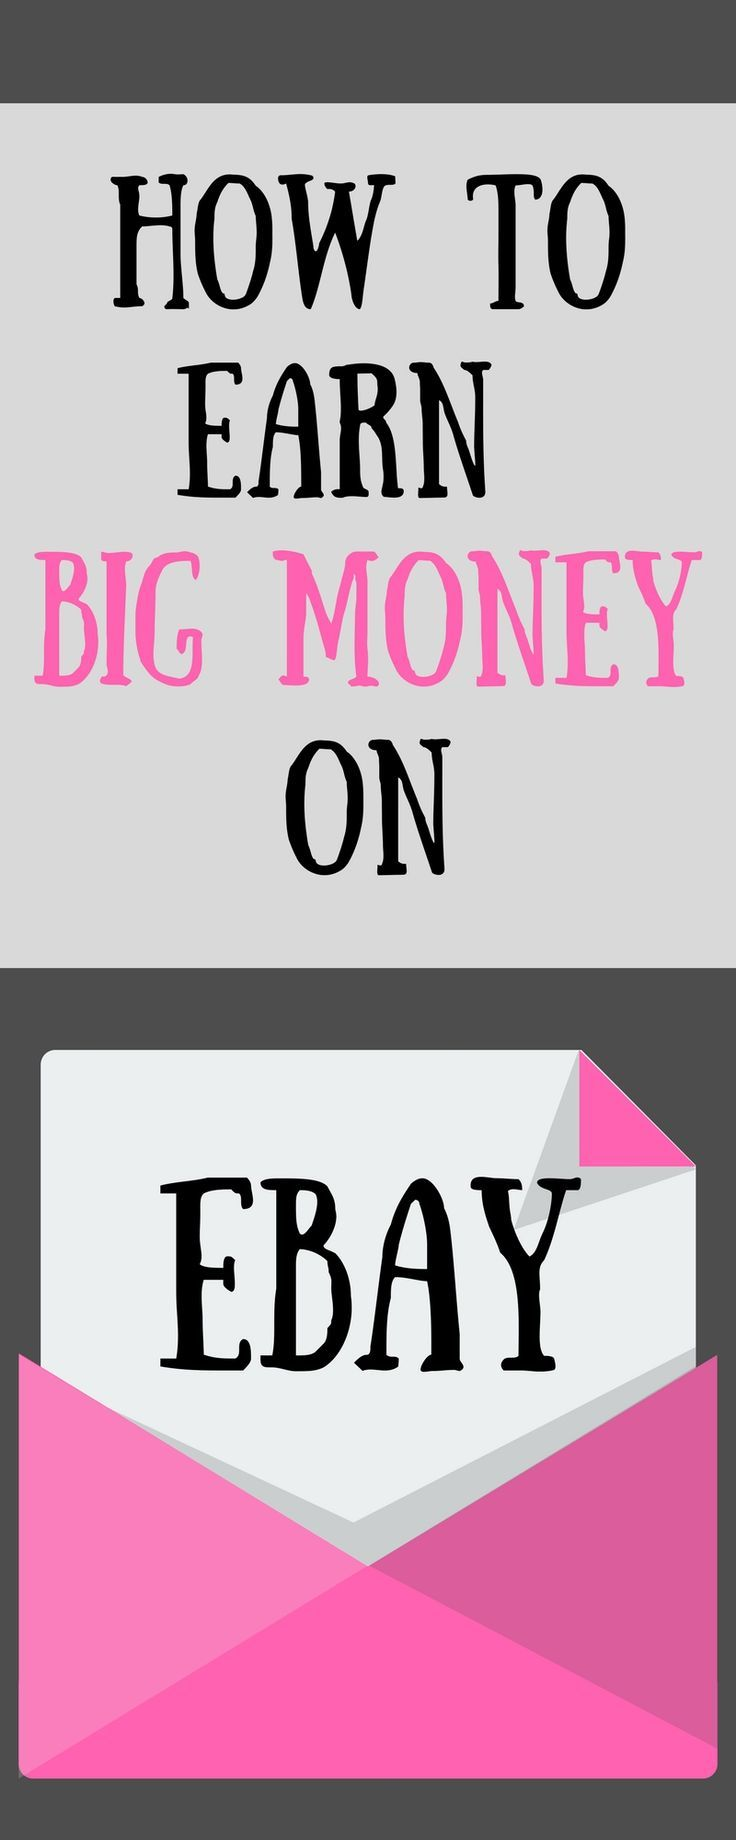 How to Make Money on eBay Selling Consignment for Others How to Make Money on eBay Selling Consignment for Others new foto